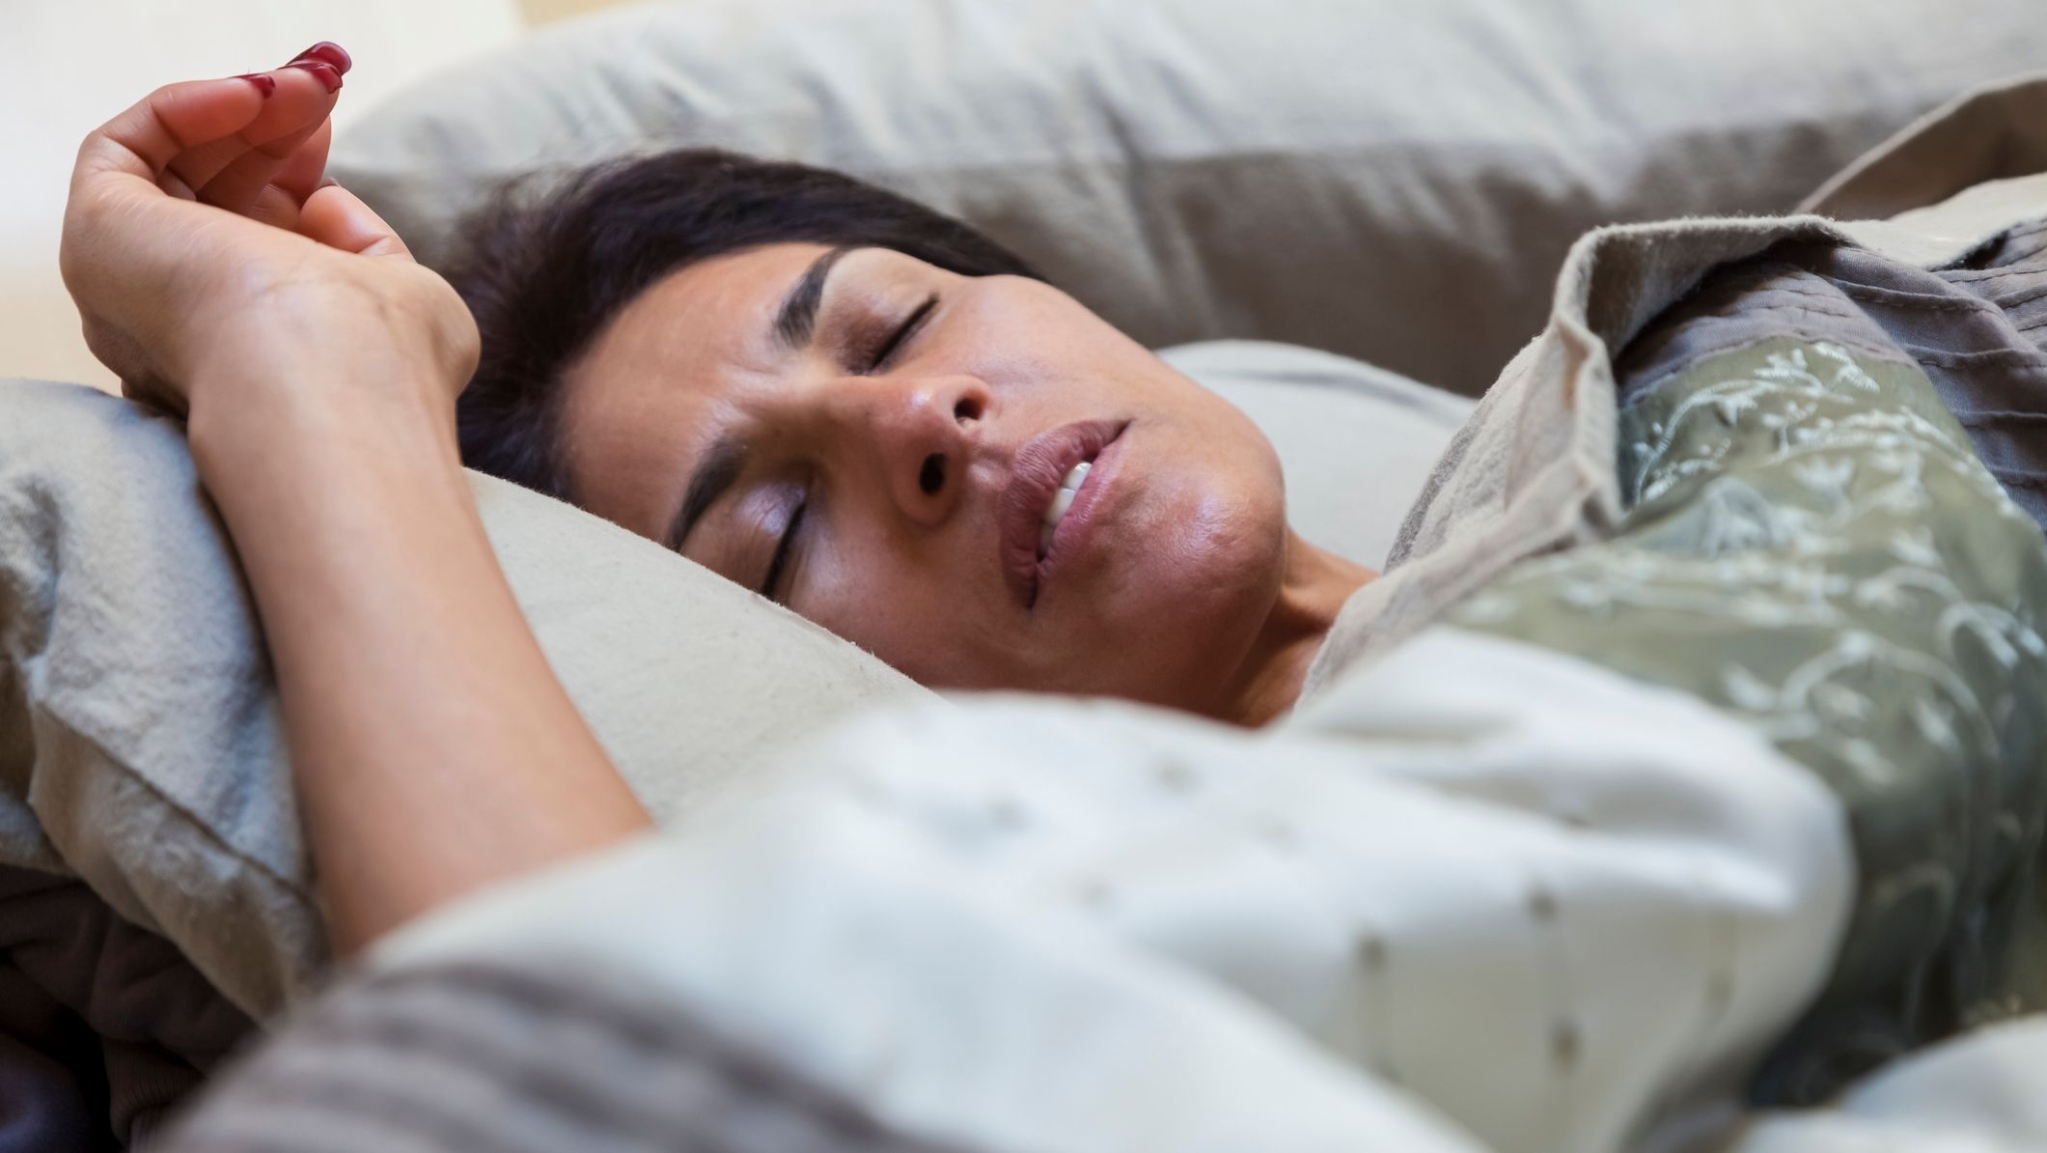 Women with Sleep Apnoea at Greater Cancer Risk: Study